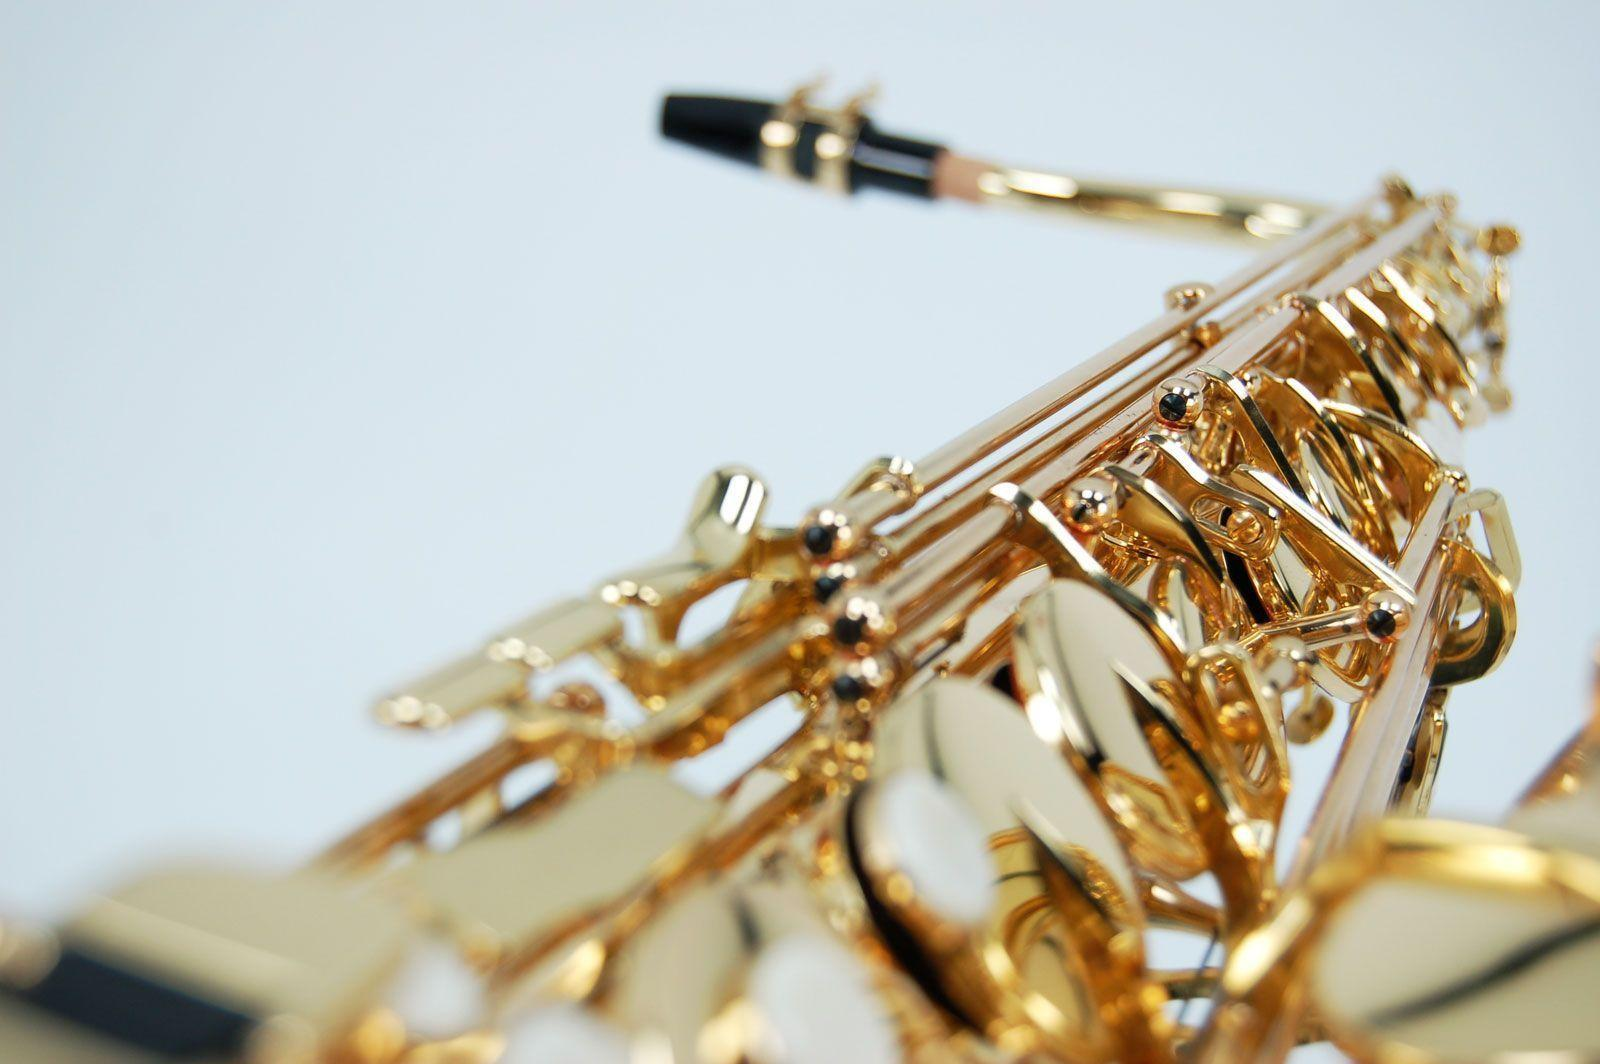 Awesome Saxophone Wallpaper Computer 6568 #11714 Wallpaper | Cool ...